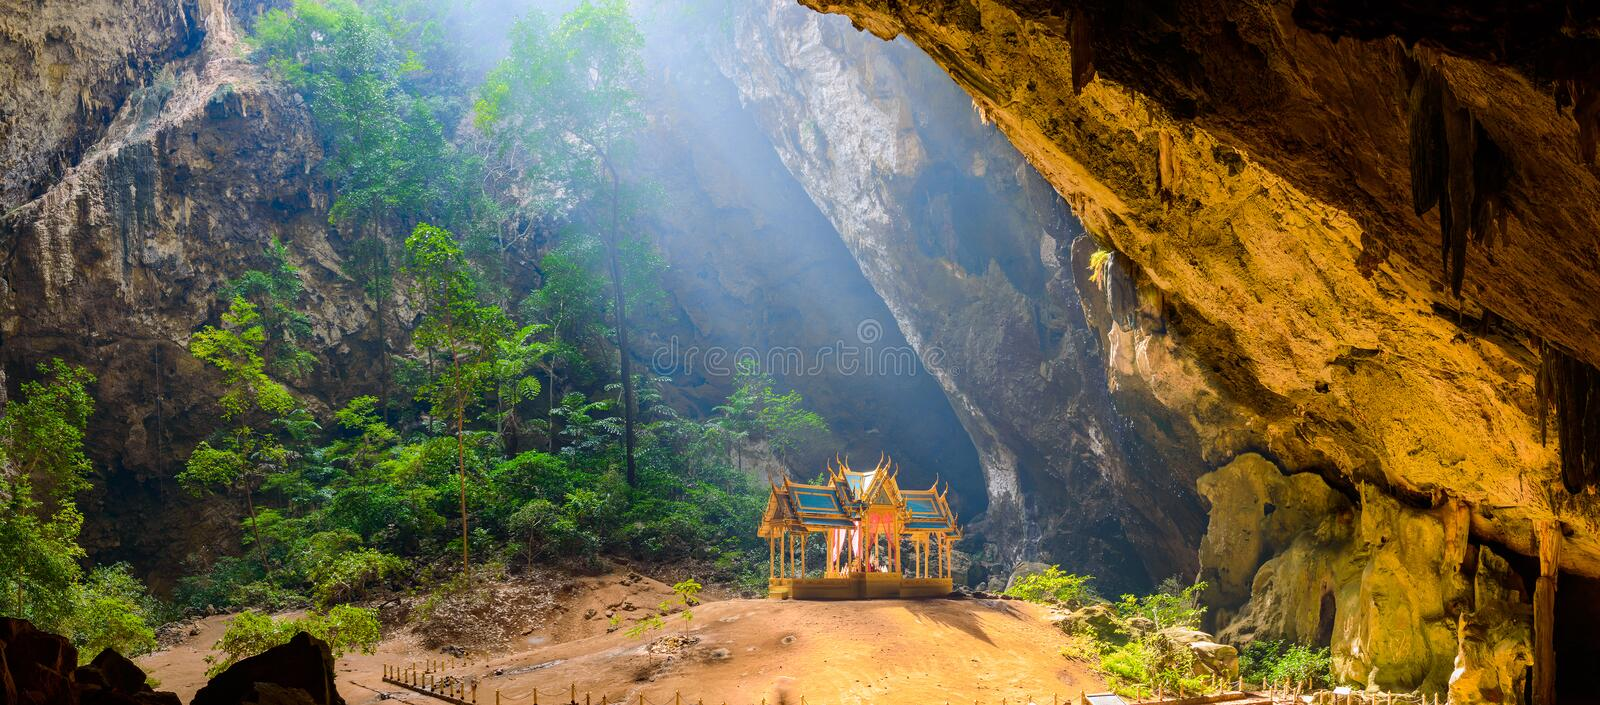 Phraya Nakhon Cave. Khao Sam Roi Yot National Park in Thailand. Small temple in the sun rays in cave royalty free stock photography